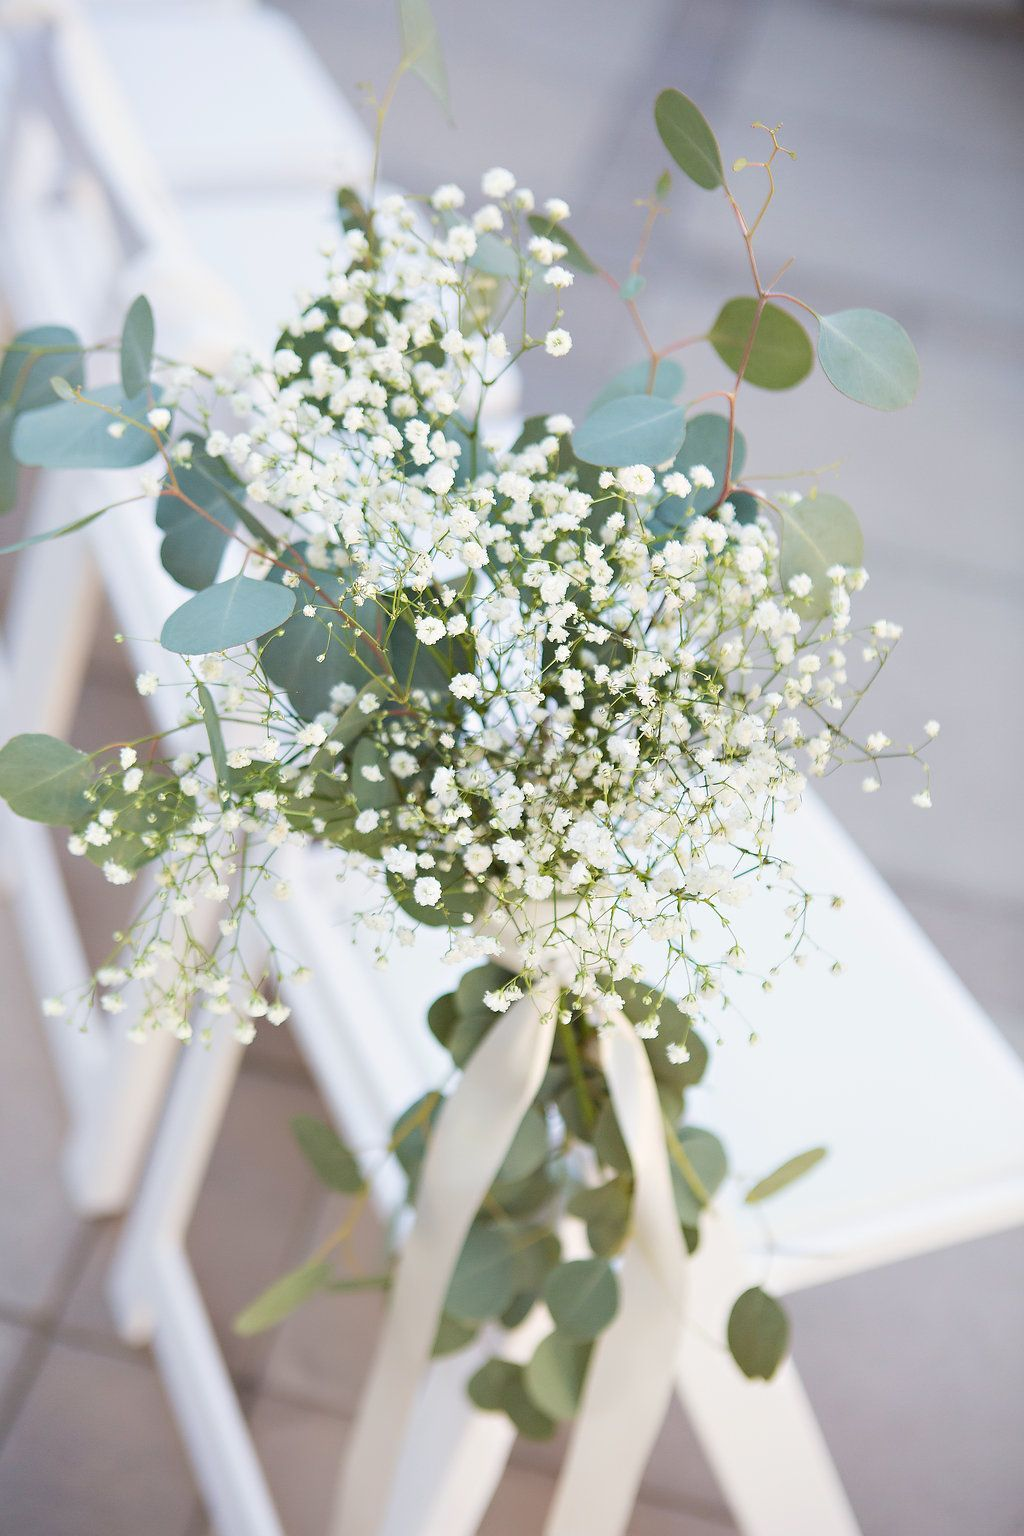 Baby S Breath And Eucalyptus Decor At Wedding Ceremony Youreventflorist Weddingflow Wedding Isle Decorations Wedding Aisle Outdoor Wedding Aisle Decorations